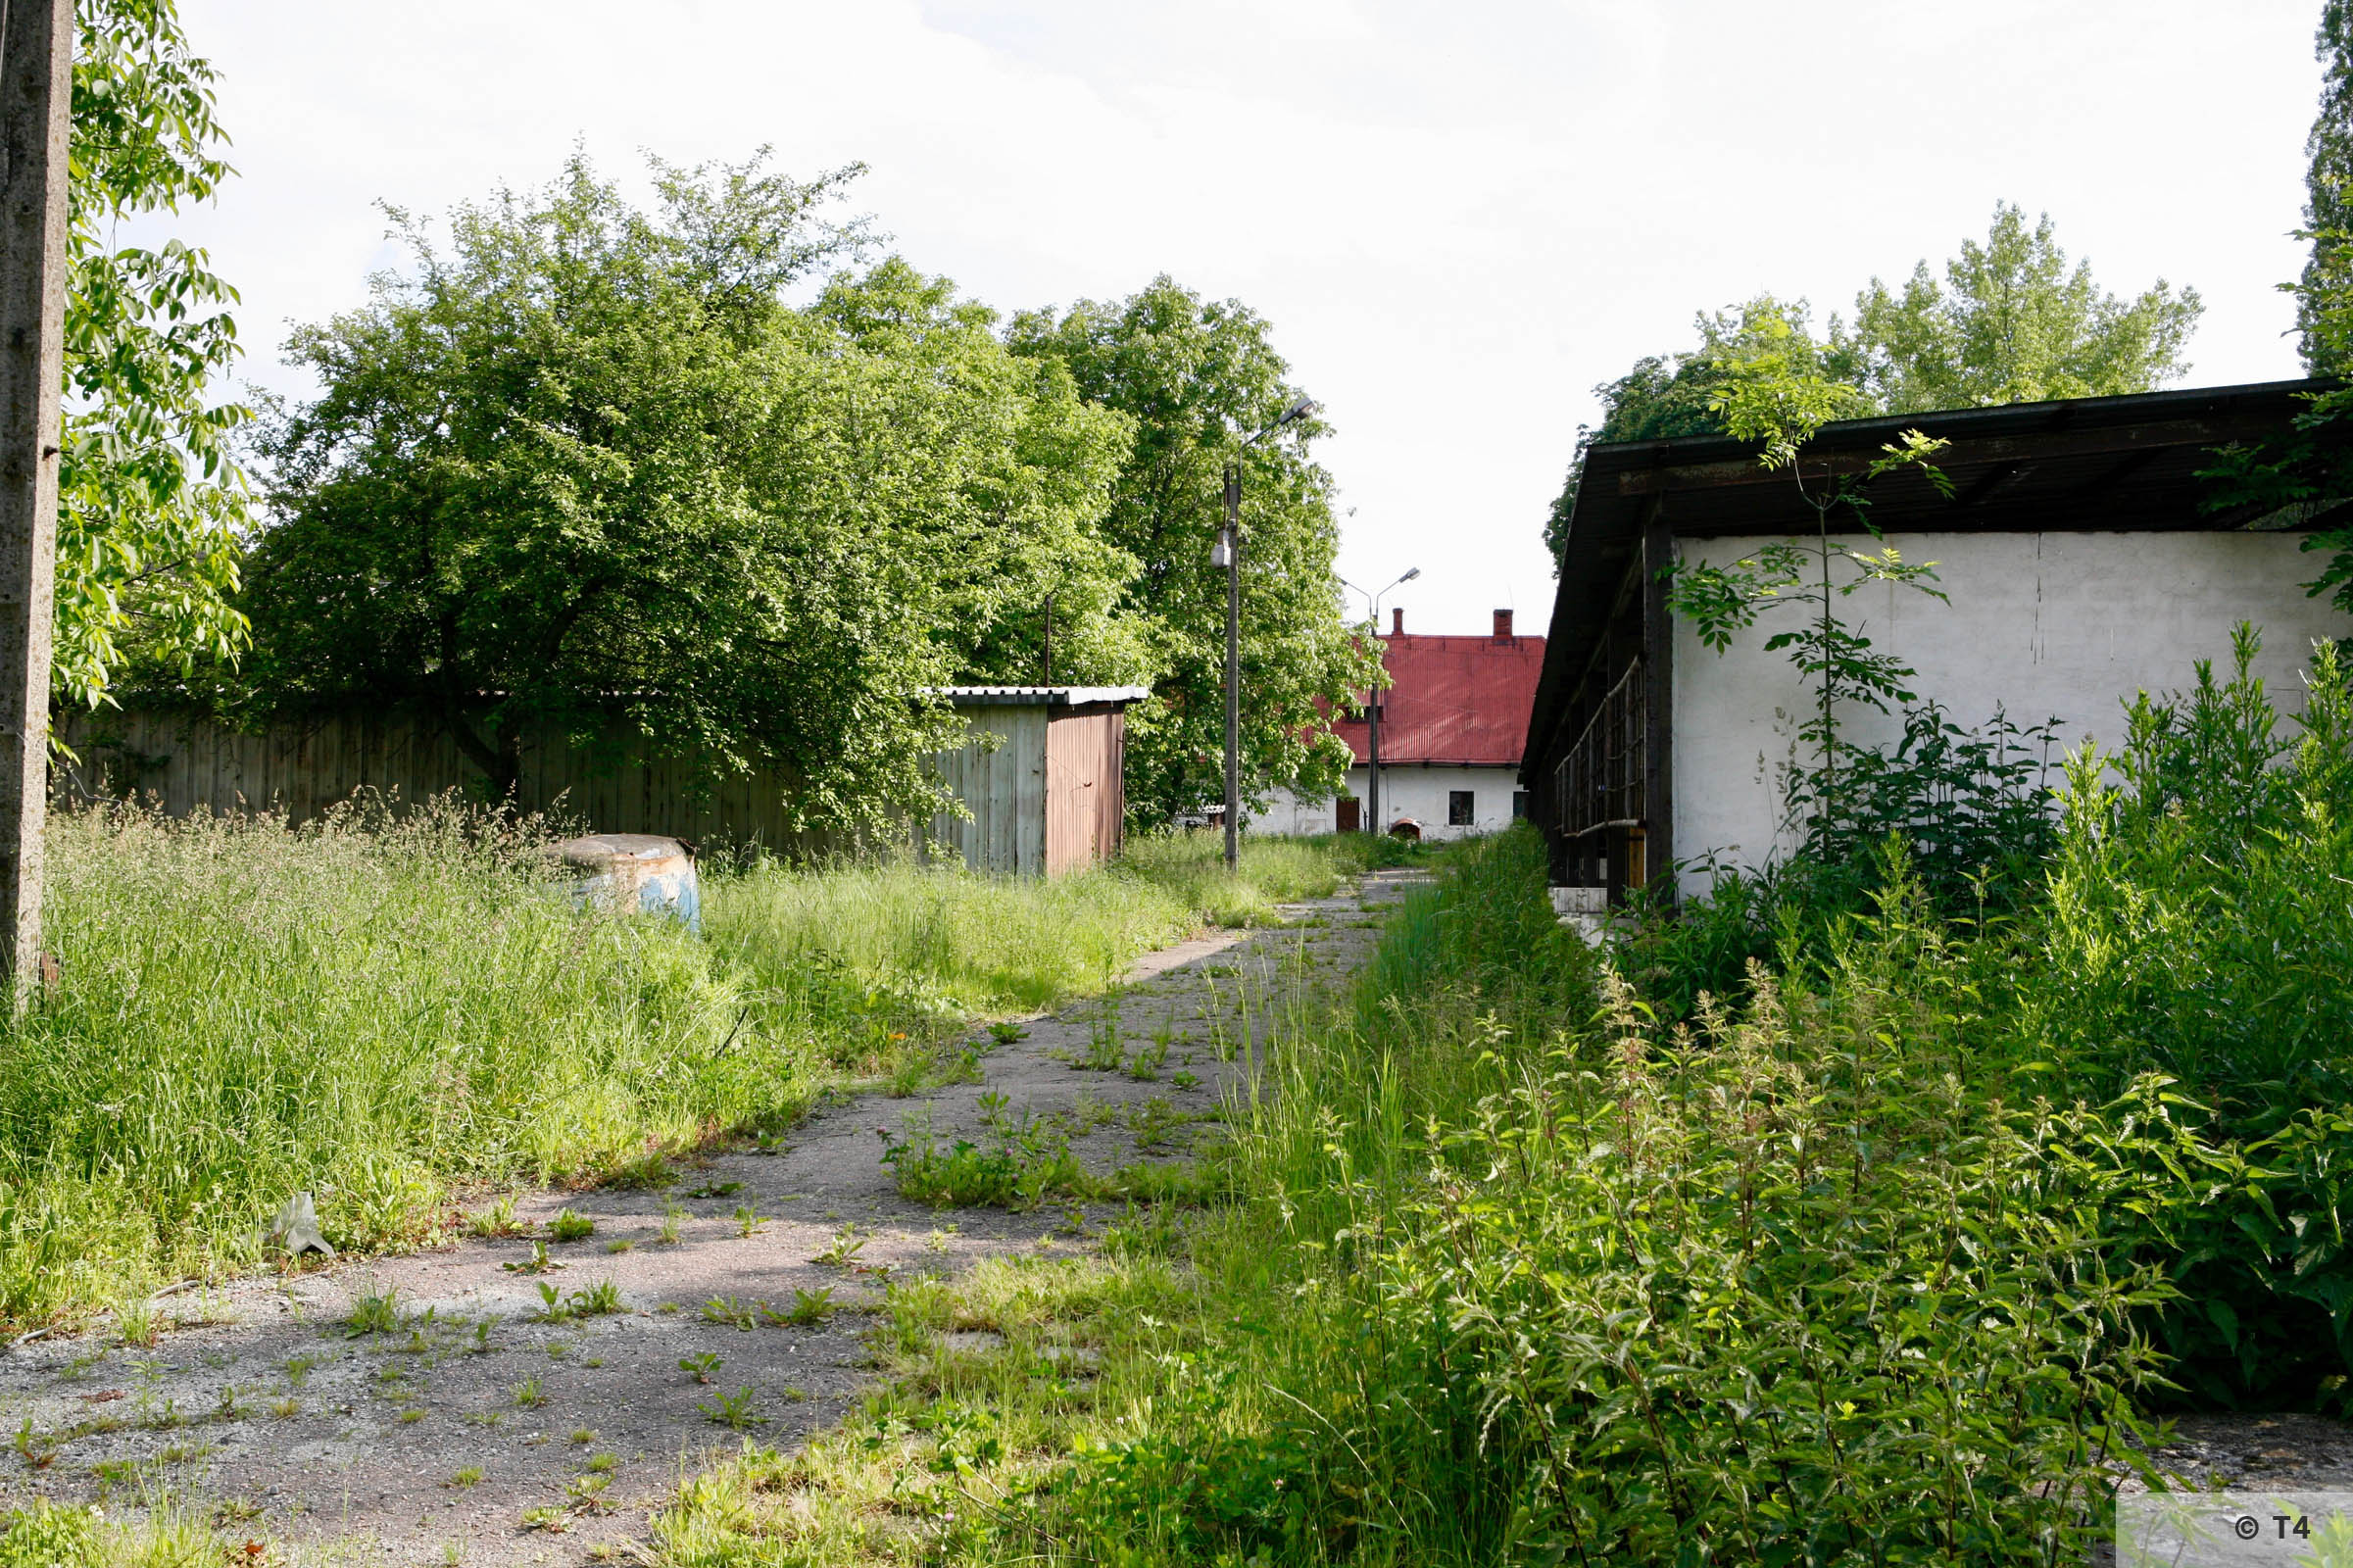 Single storey stable block on the right and former smithy at the end. 2006 T4 6692